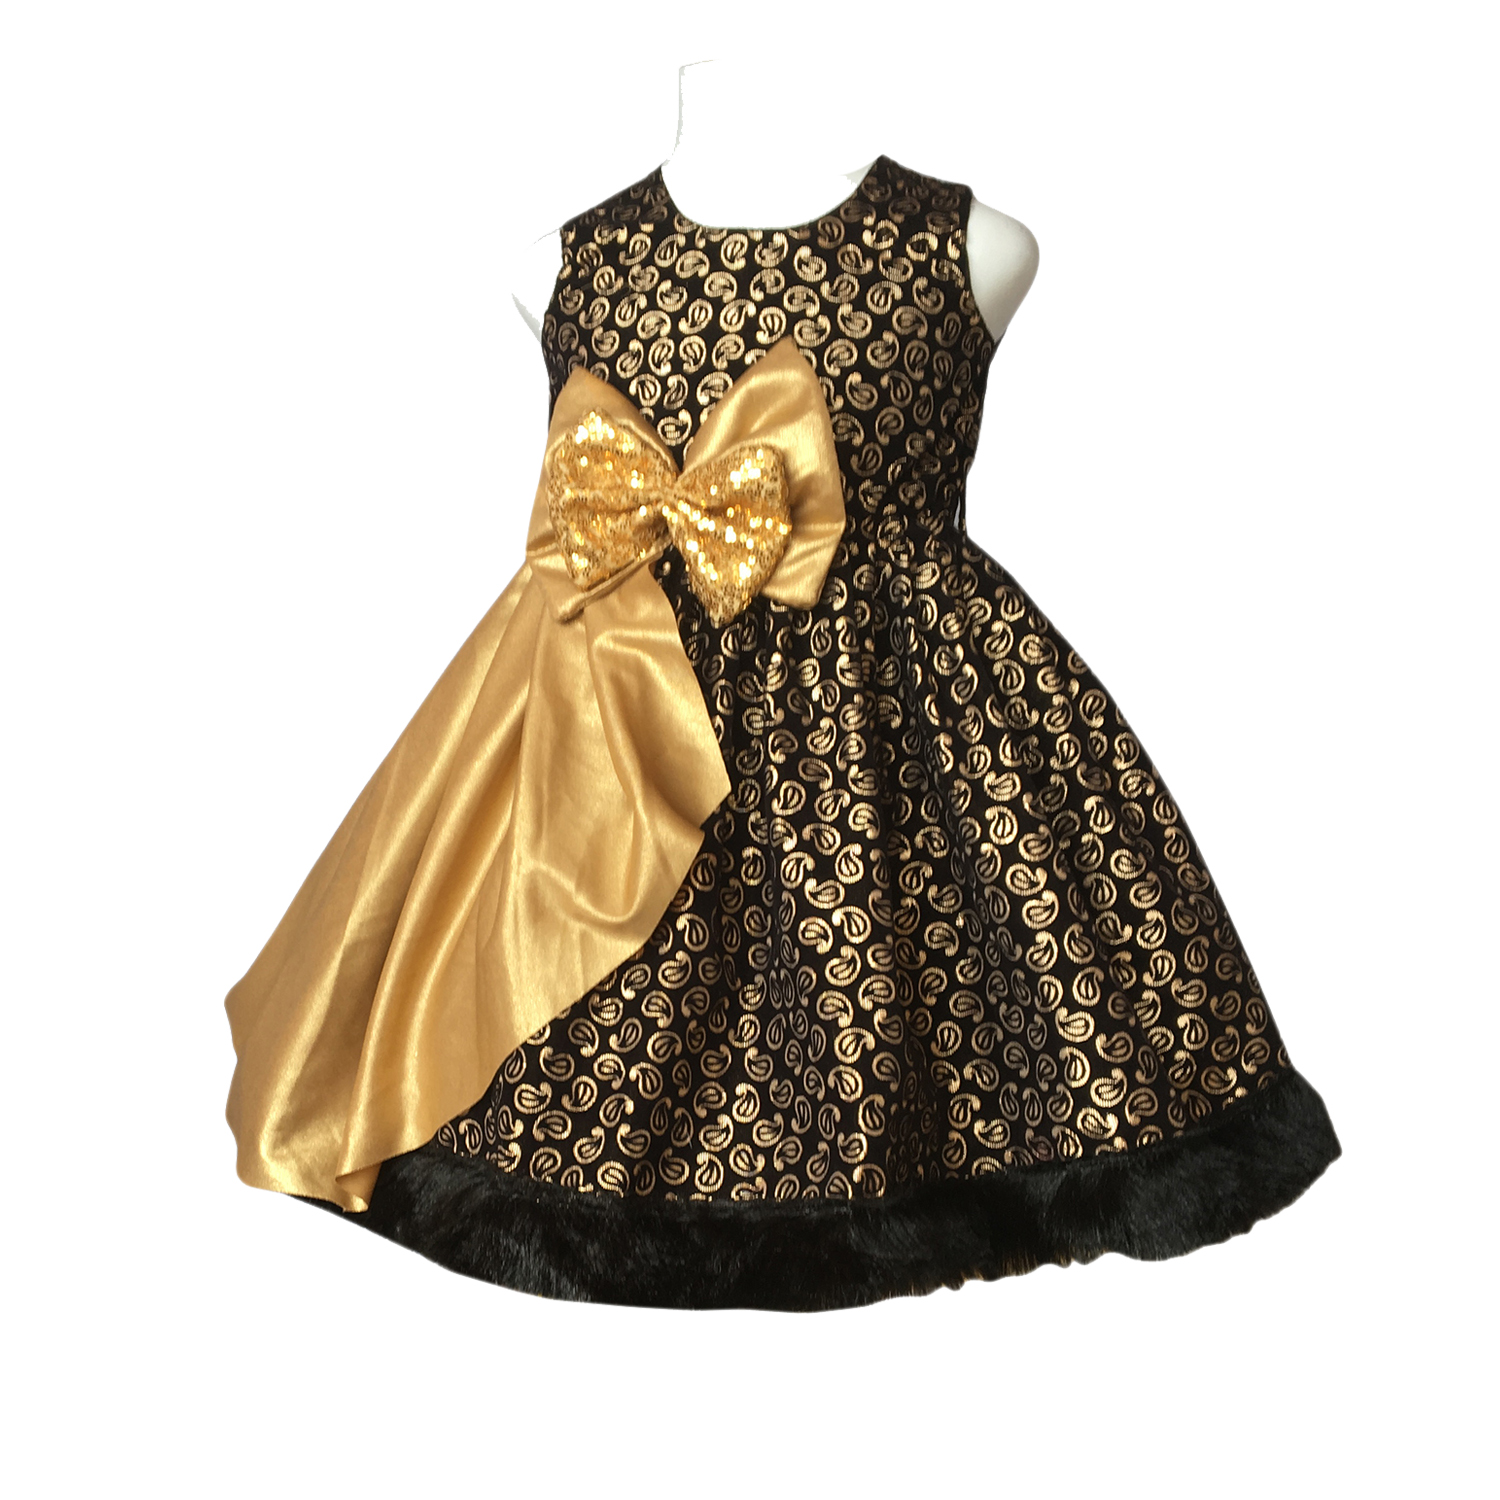 8c671a7cd2 Black And Gold Toddler Formal Dress - Gomes Weine AG